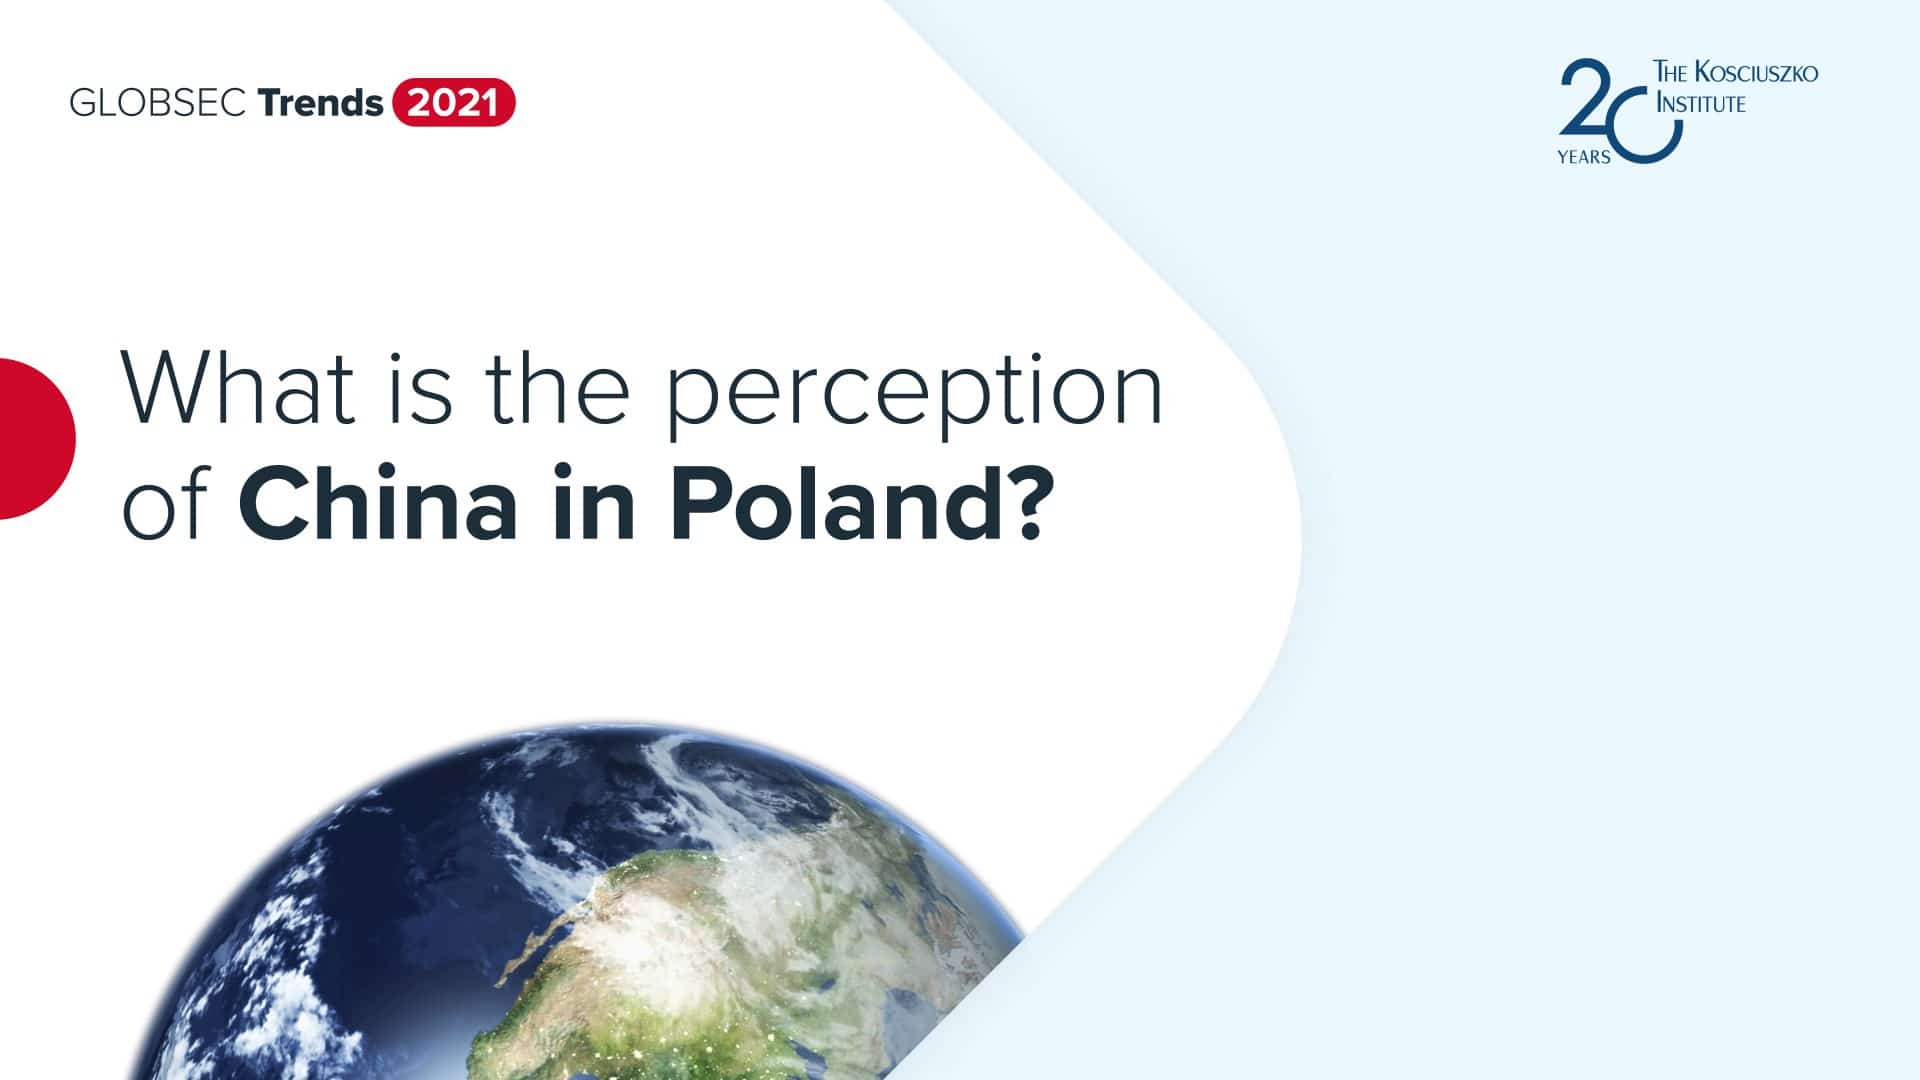 Russian and Chinese influence in Poland